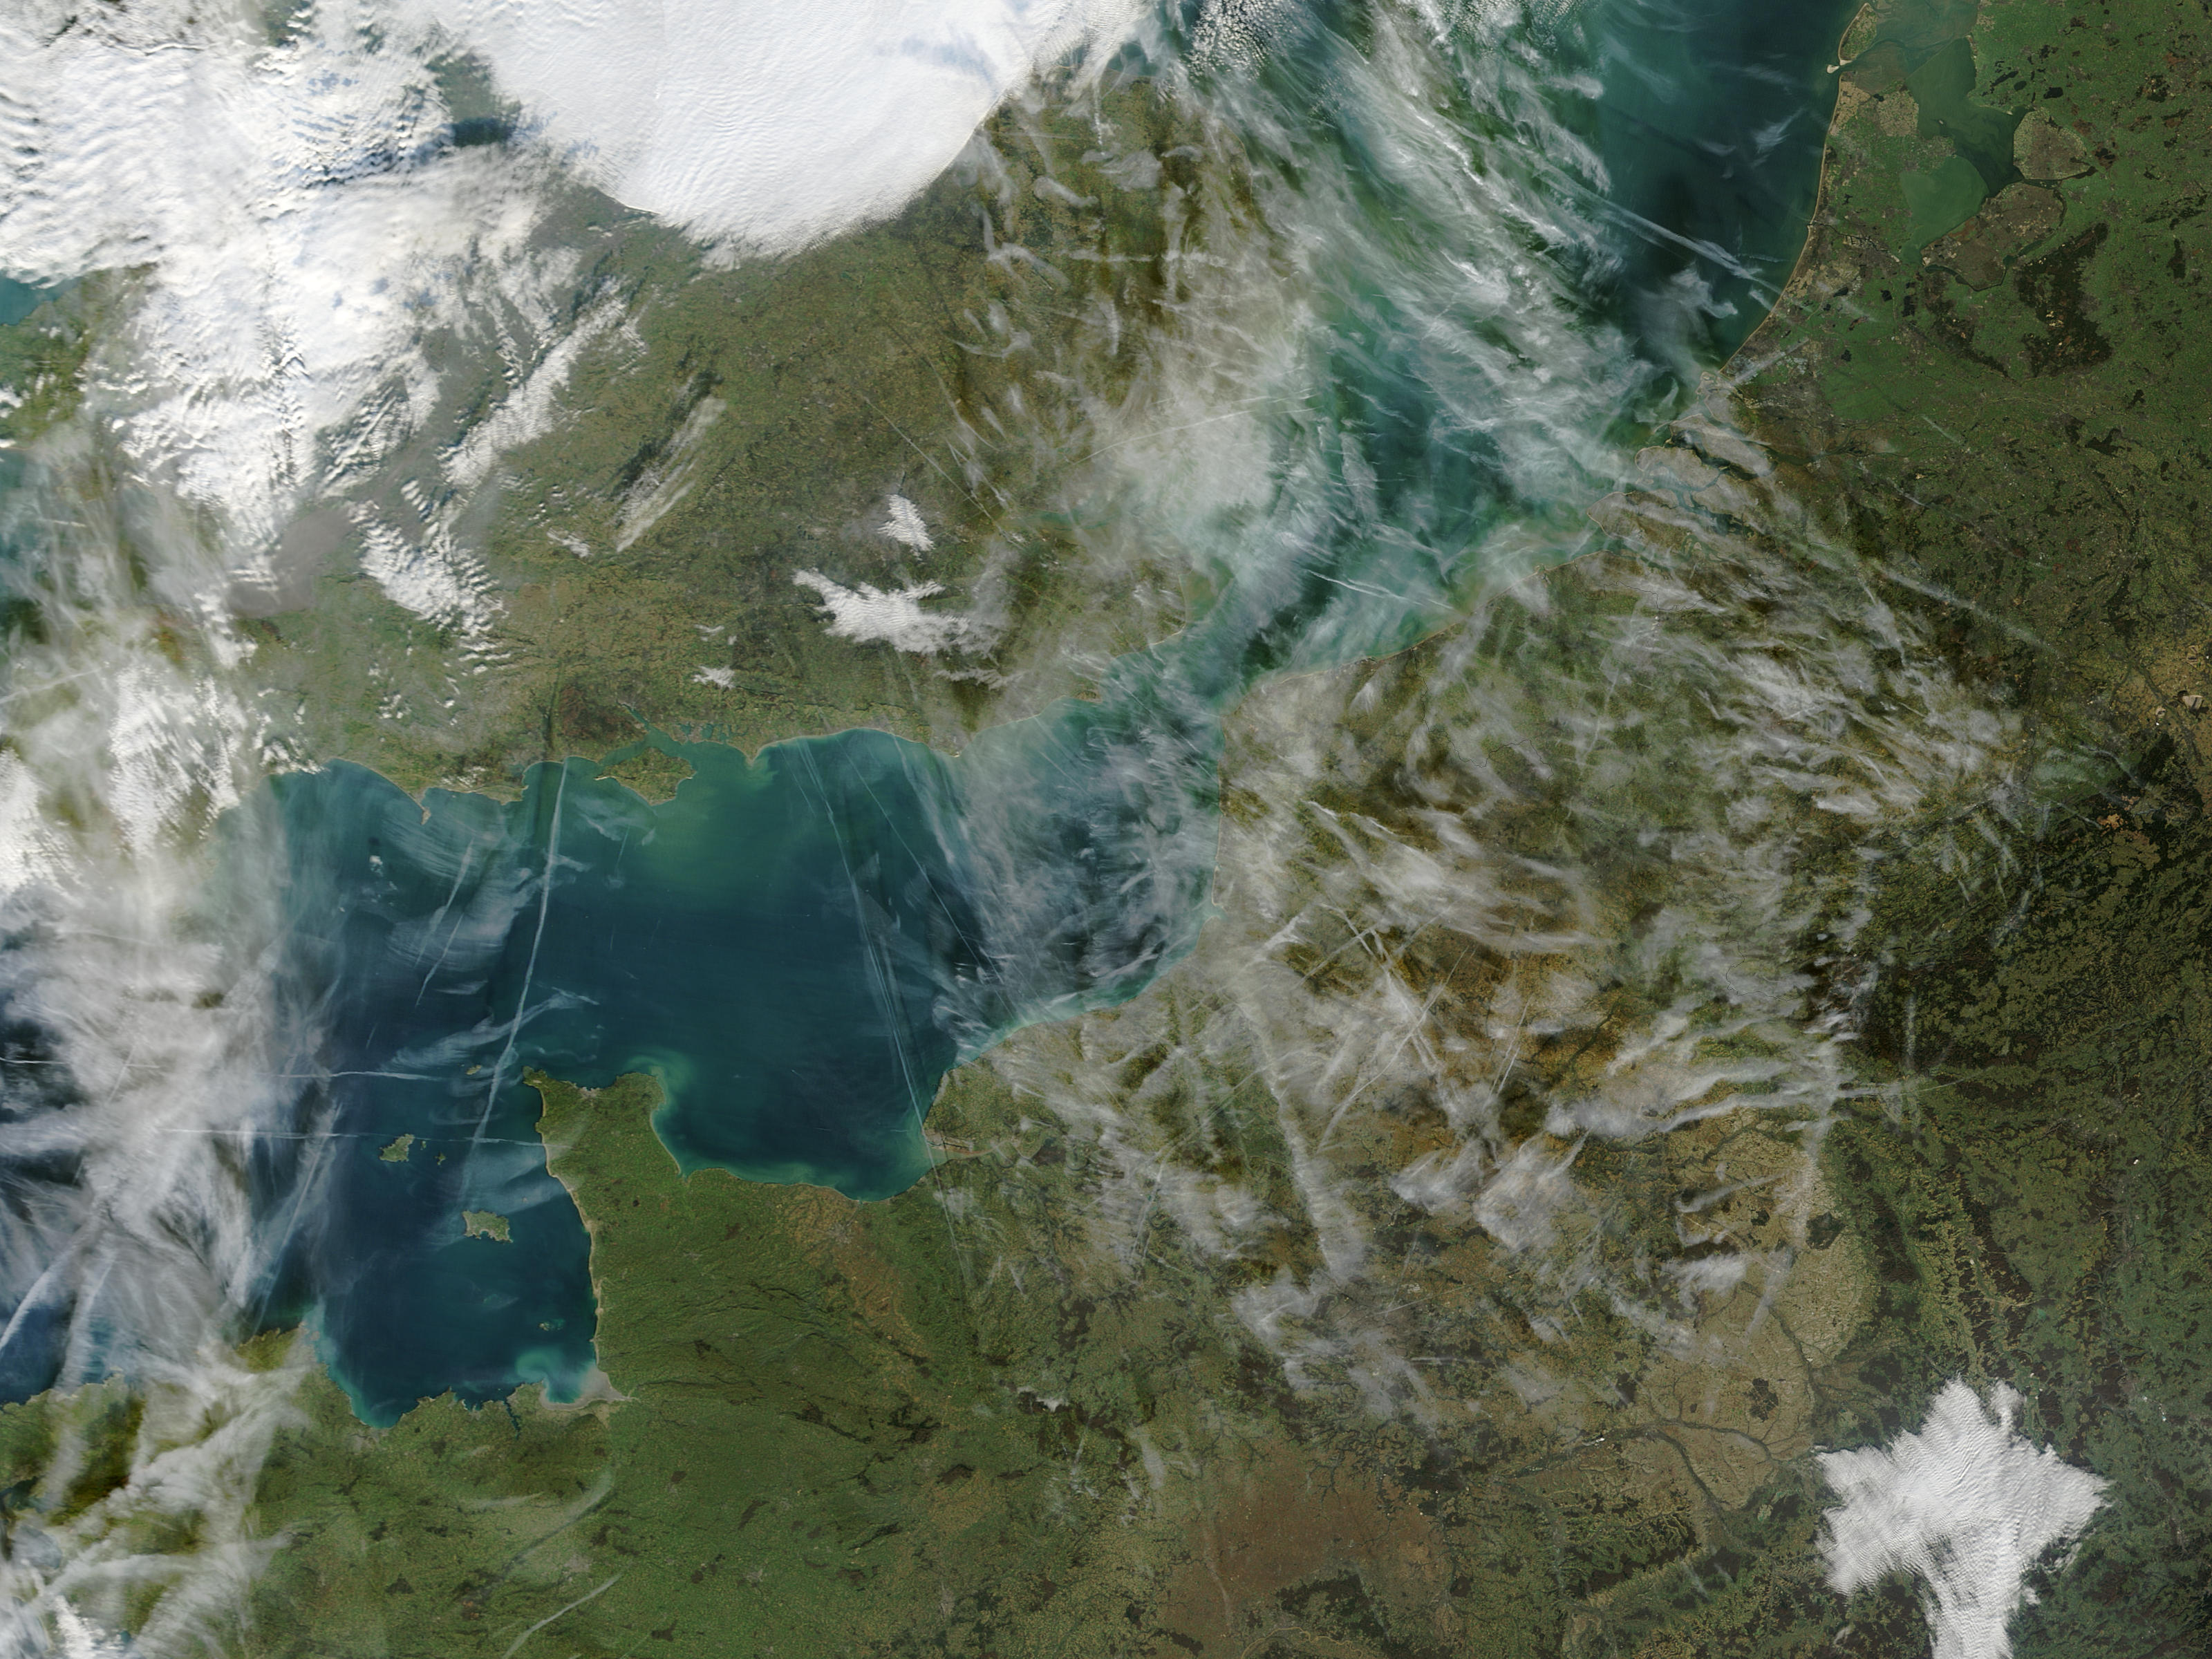 Airplane condensation trails (contrails) across the English Channel